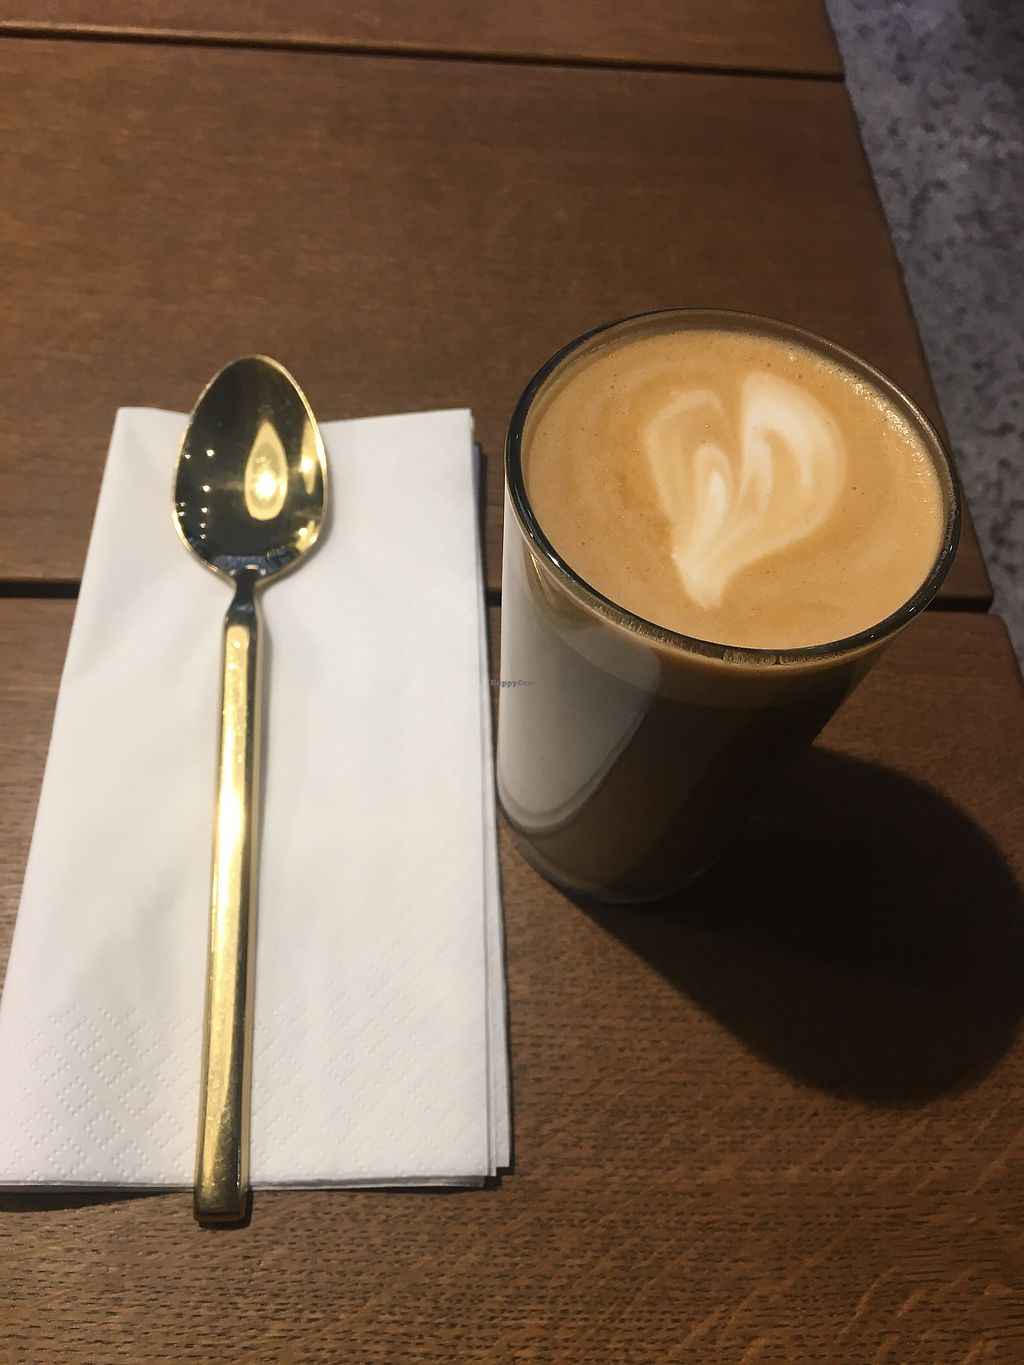 """Photo of Bowl Market  by <a href=""""/members/profile/Sorana"""">Sorana</a> <br/>Latte made with Oatly milk <br/> January 28, 2018  - <a href='/contact/abuse/image/108954/351943'>Report</a>"""